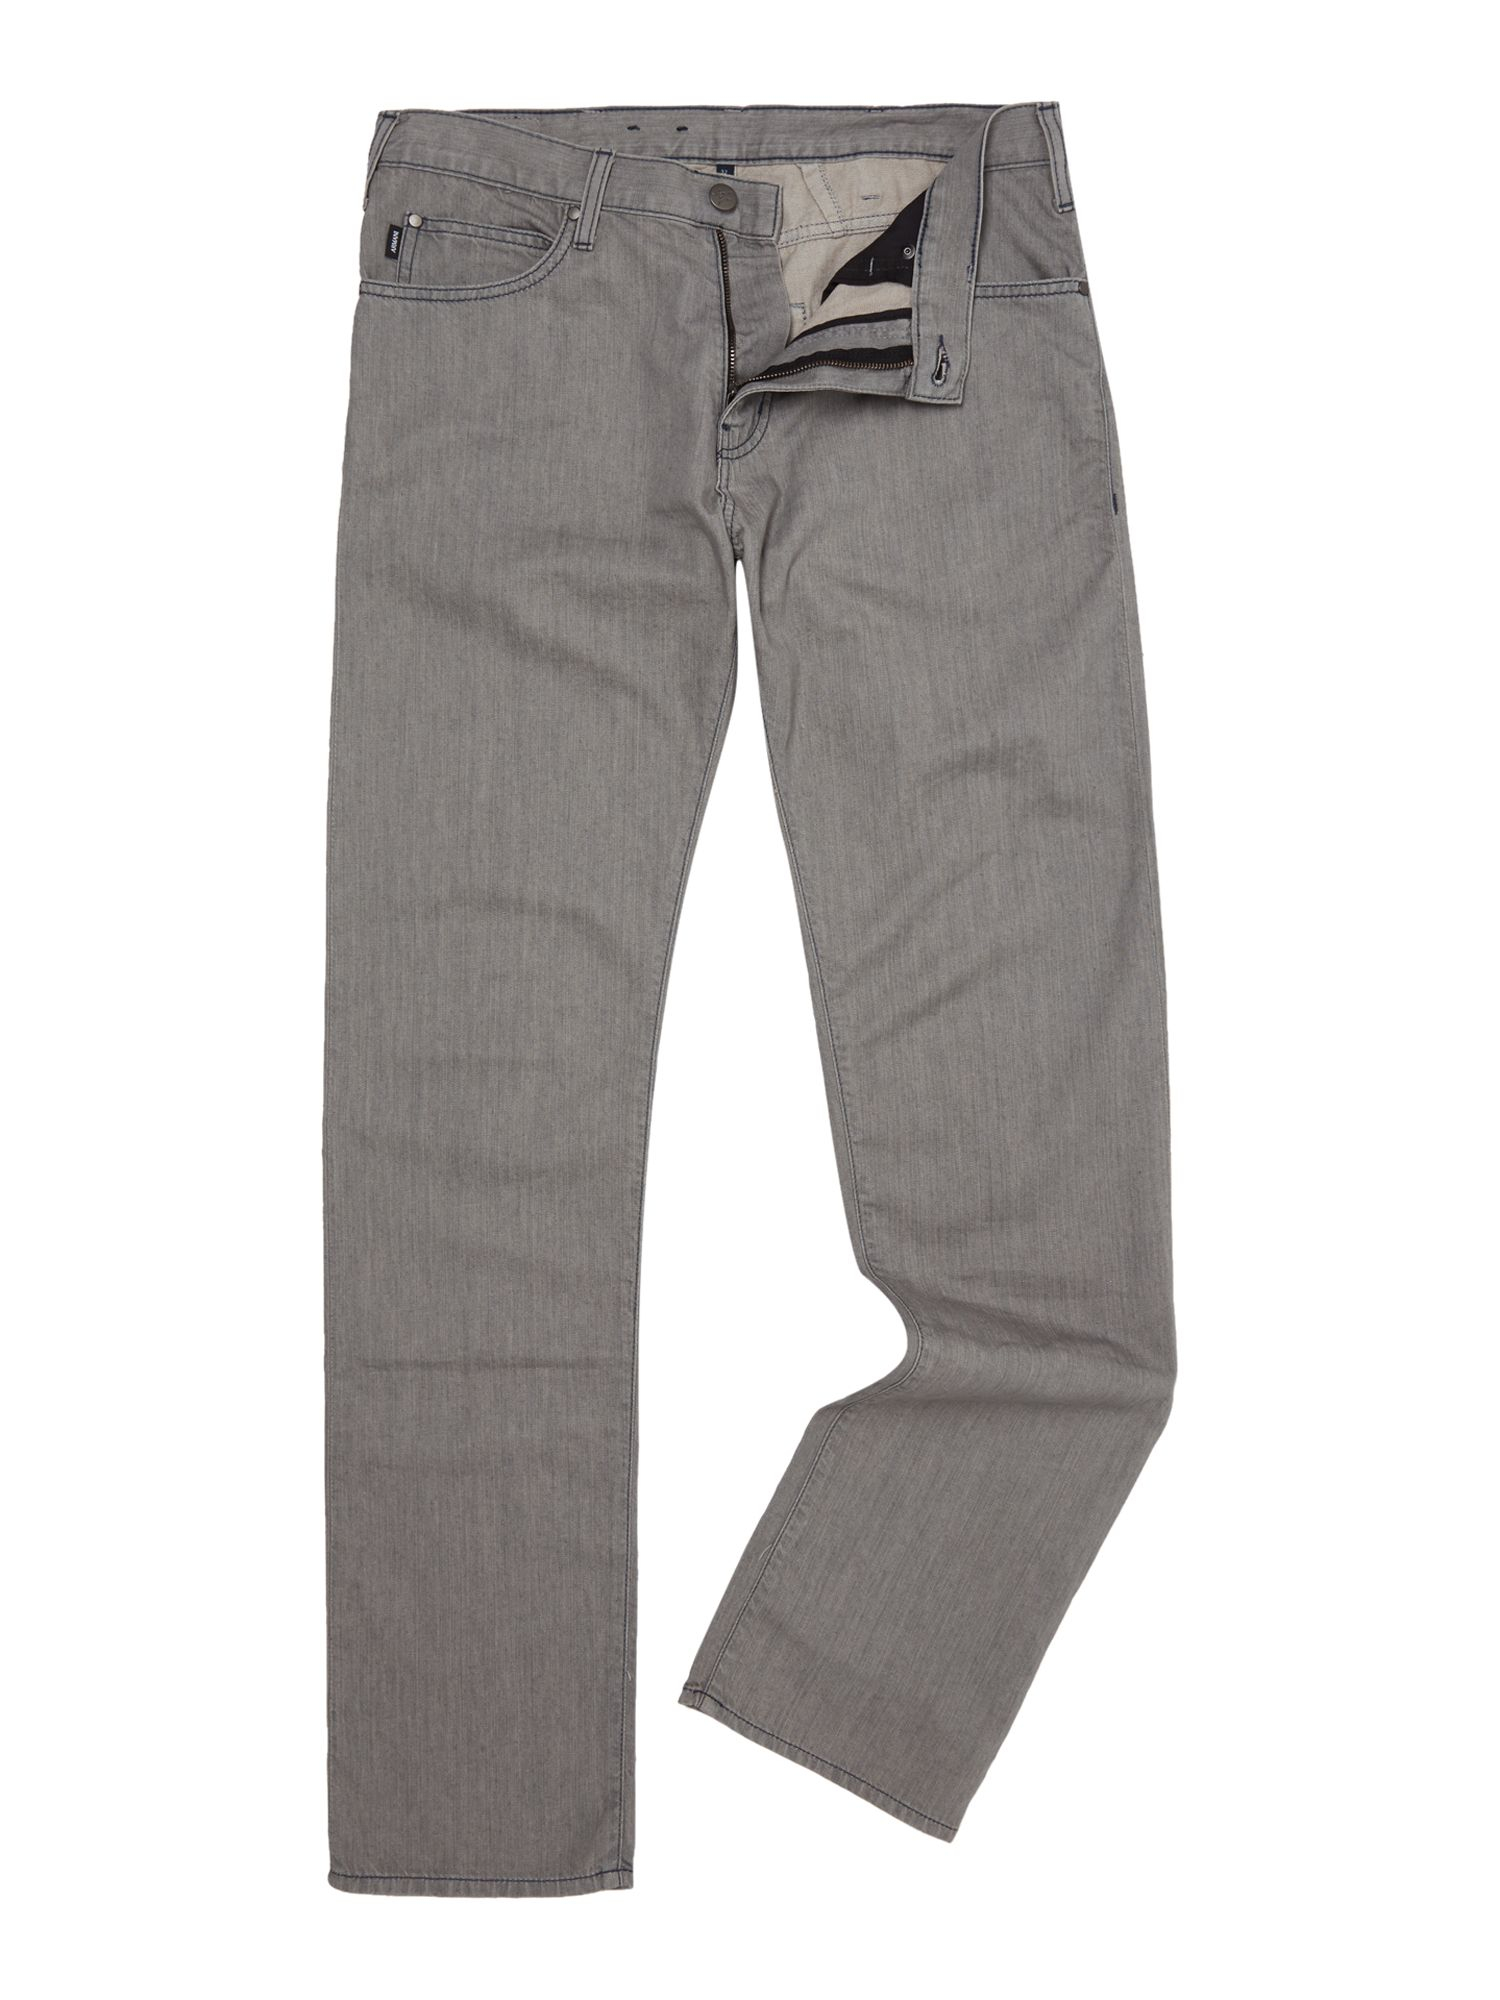 Light Grey Levis jeans are an excellent way to discover a new favorite pair. Identify the material, clothing size, and style from the listings to find the one for you. Look for colors like gray as well as others.